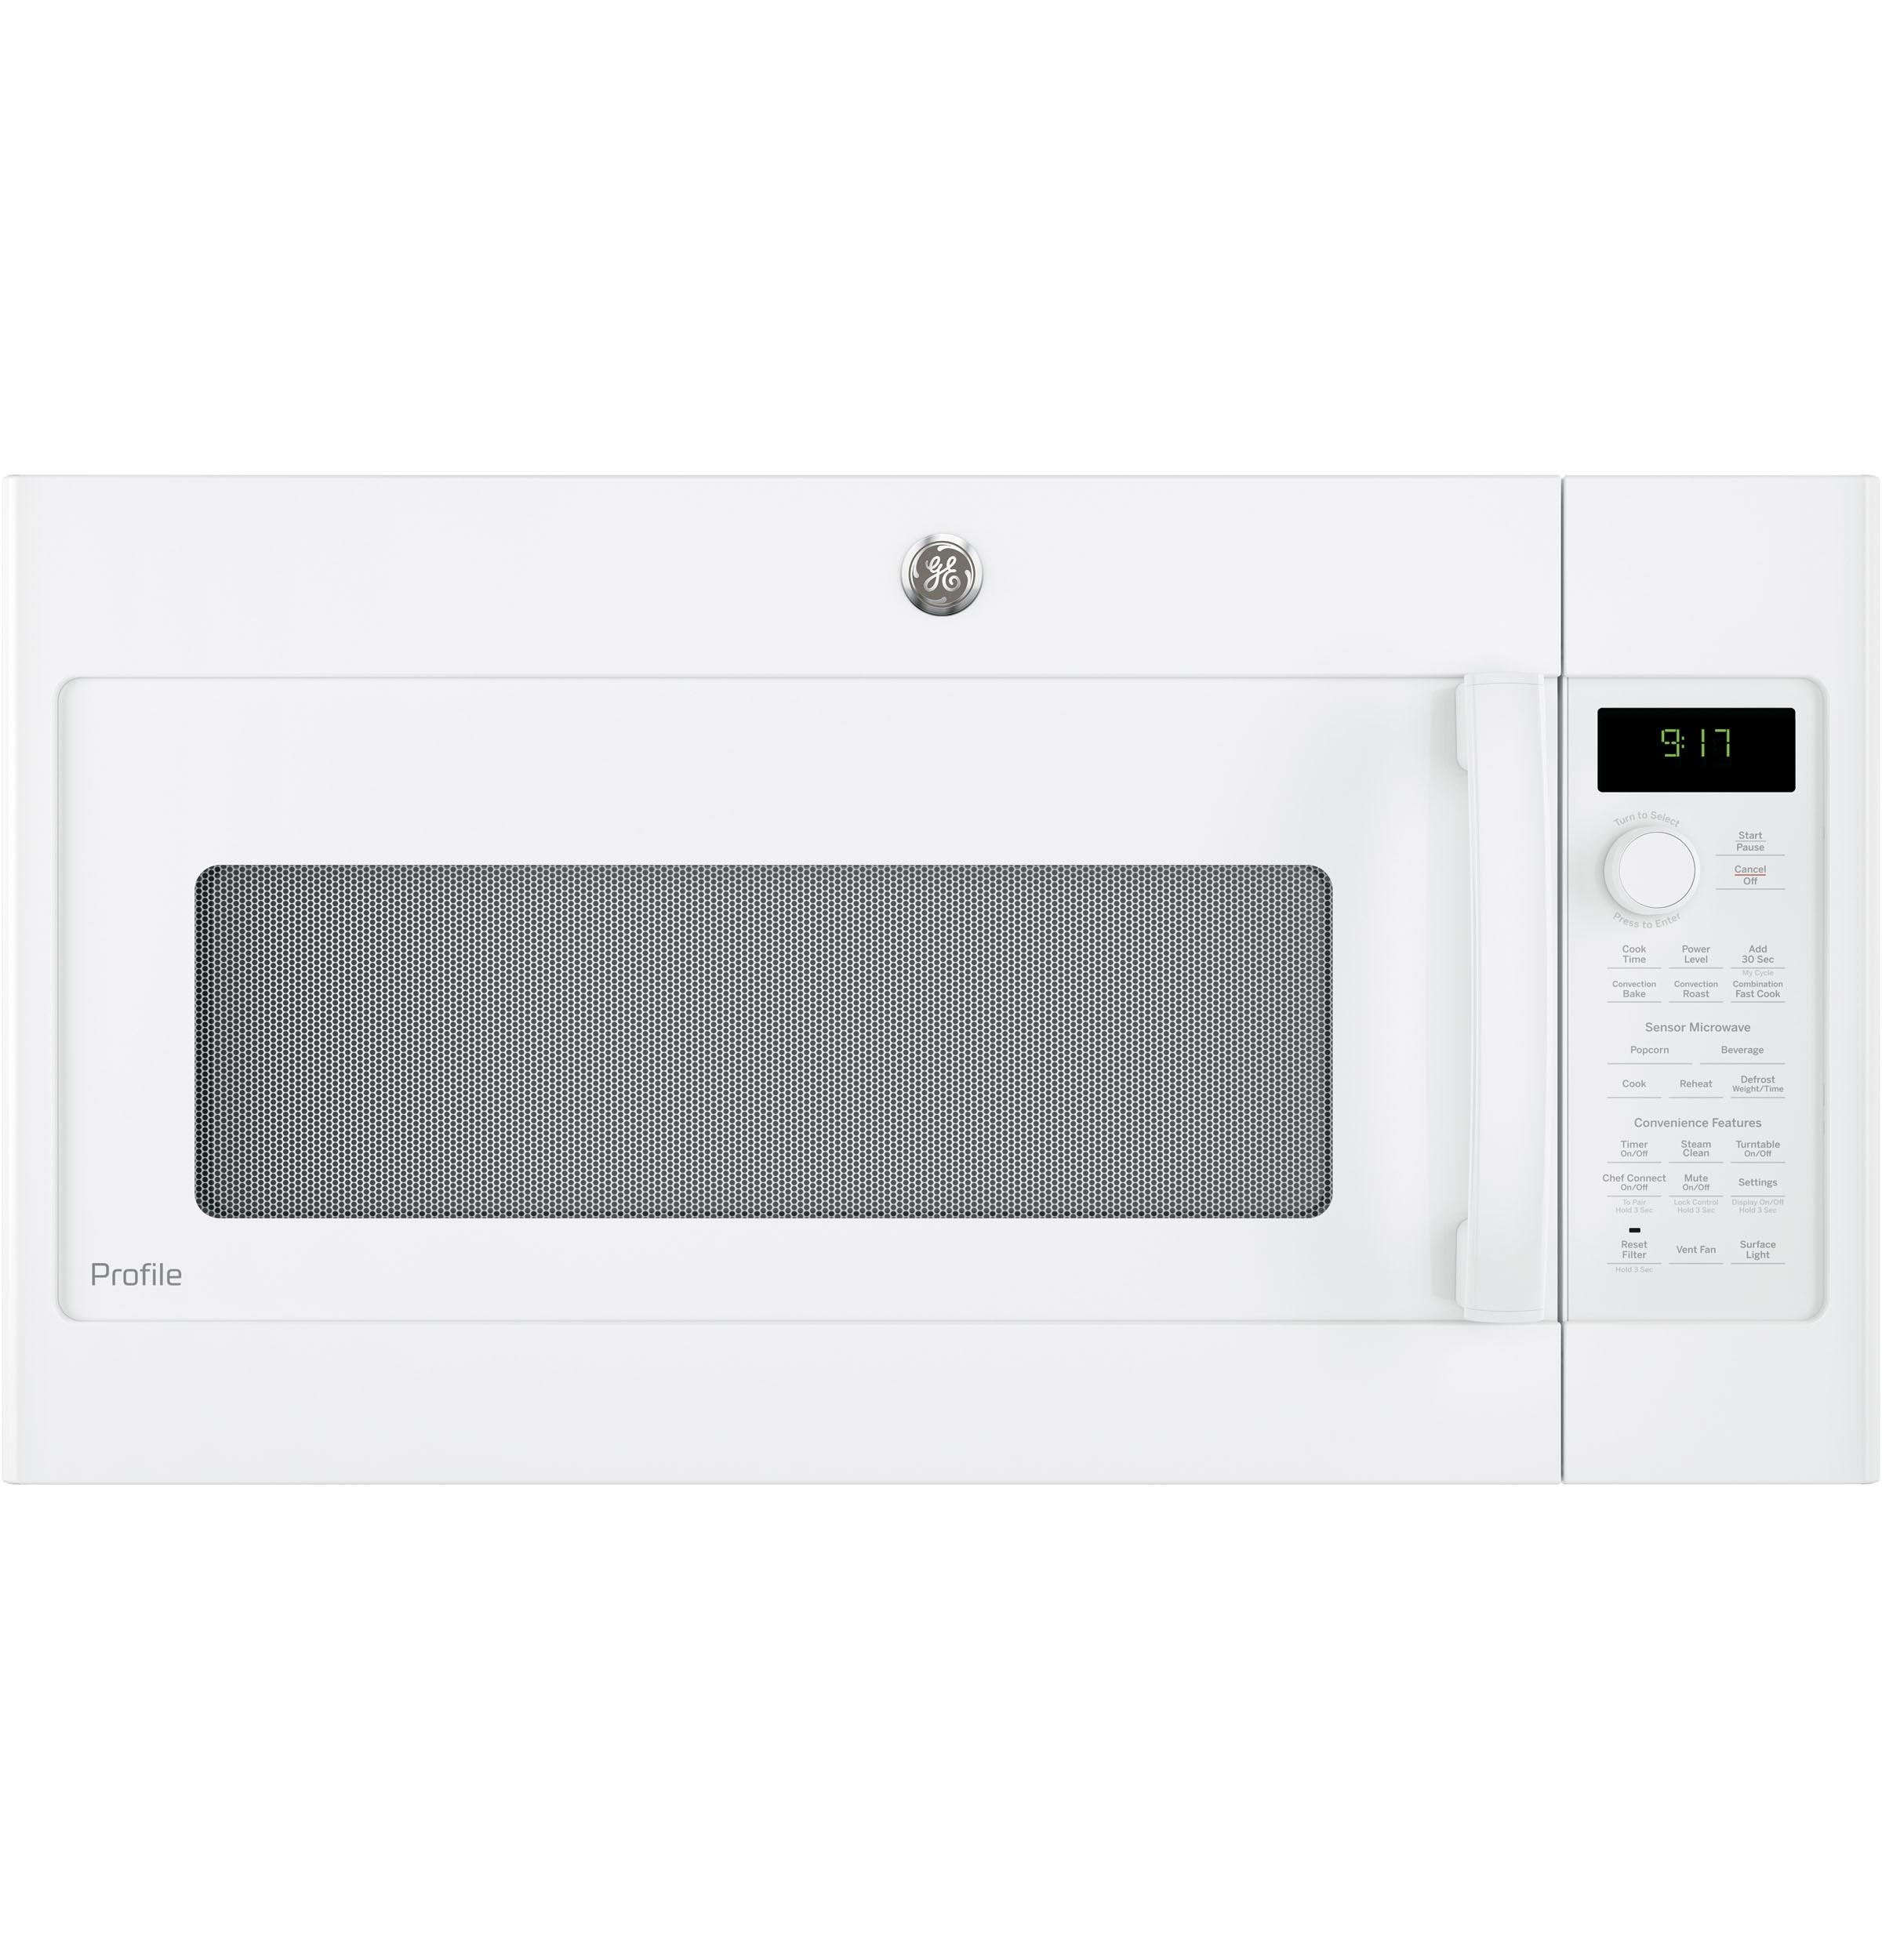 GE Profile(TM) Series 1.7 Cu. Ft. Convection Over-the-Range Microwave Oven